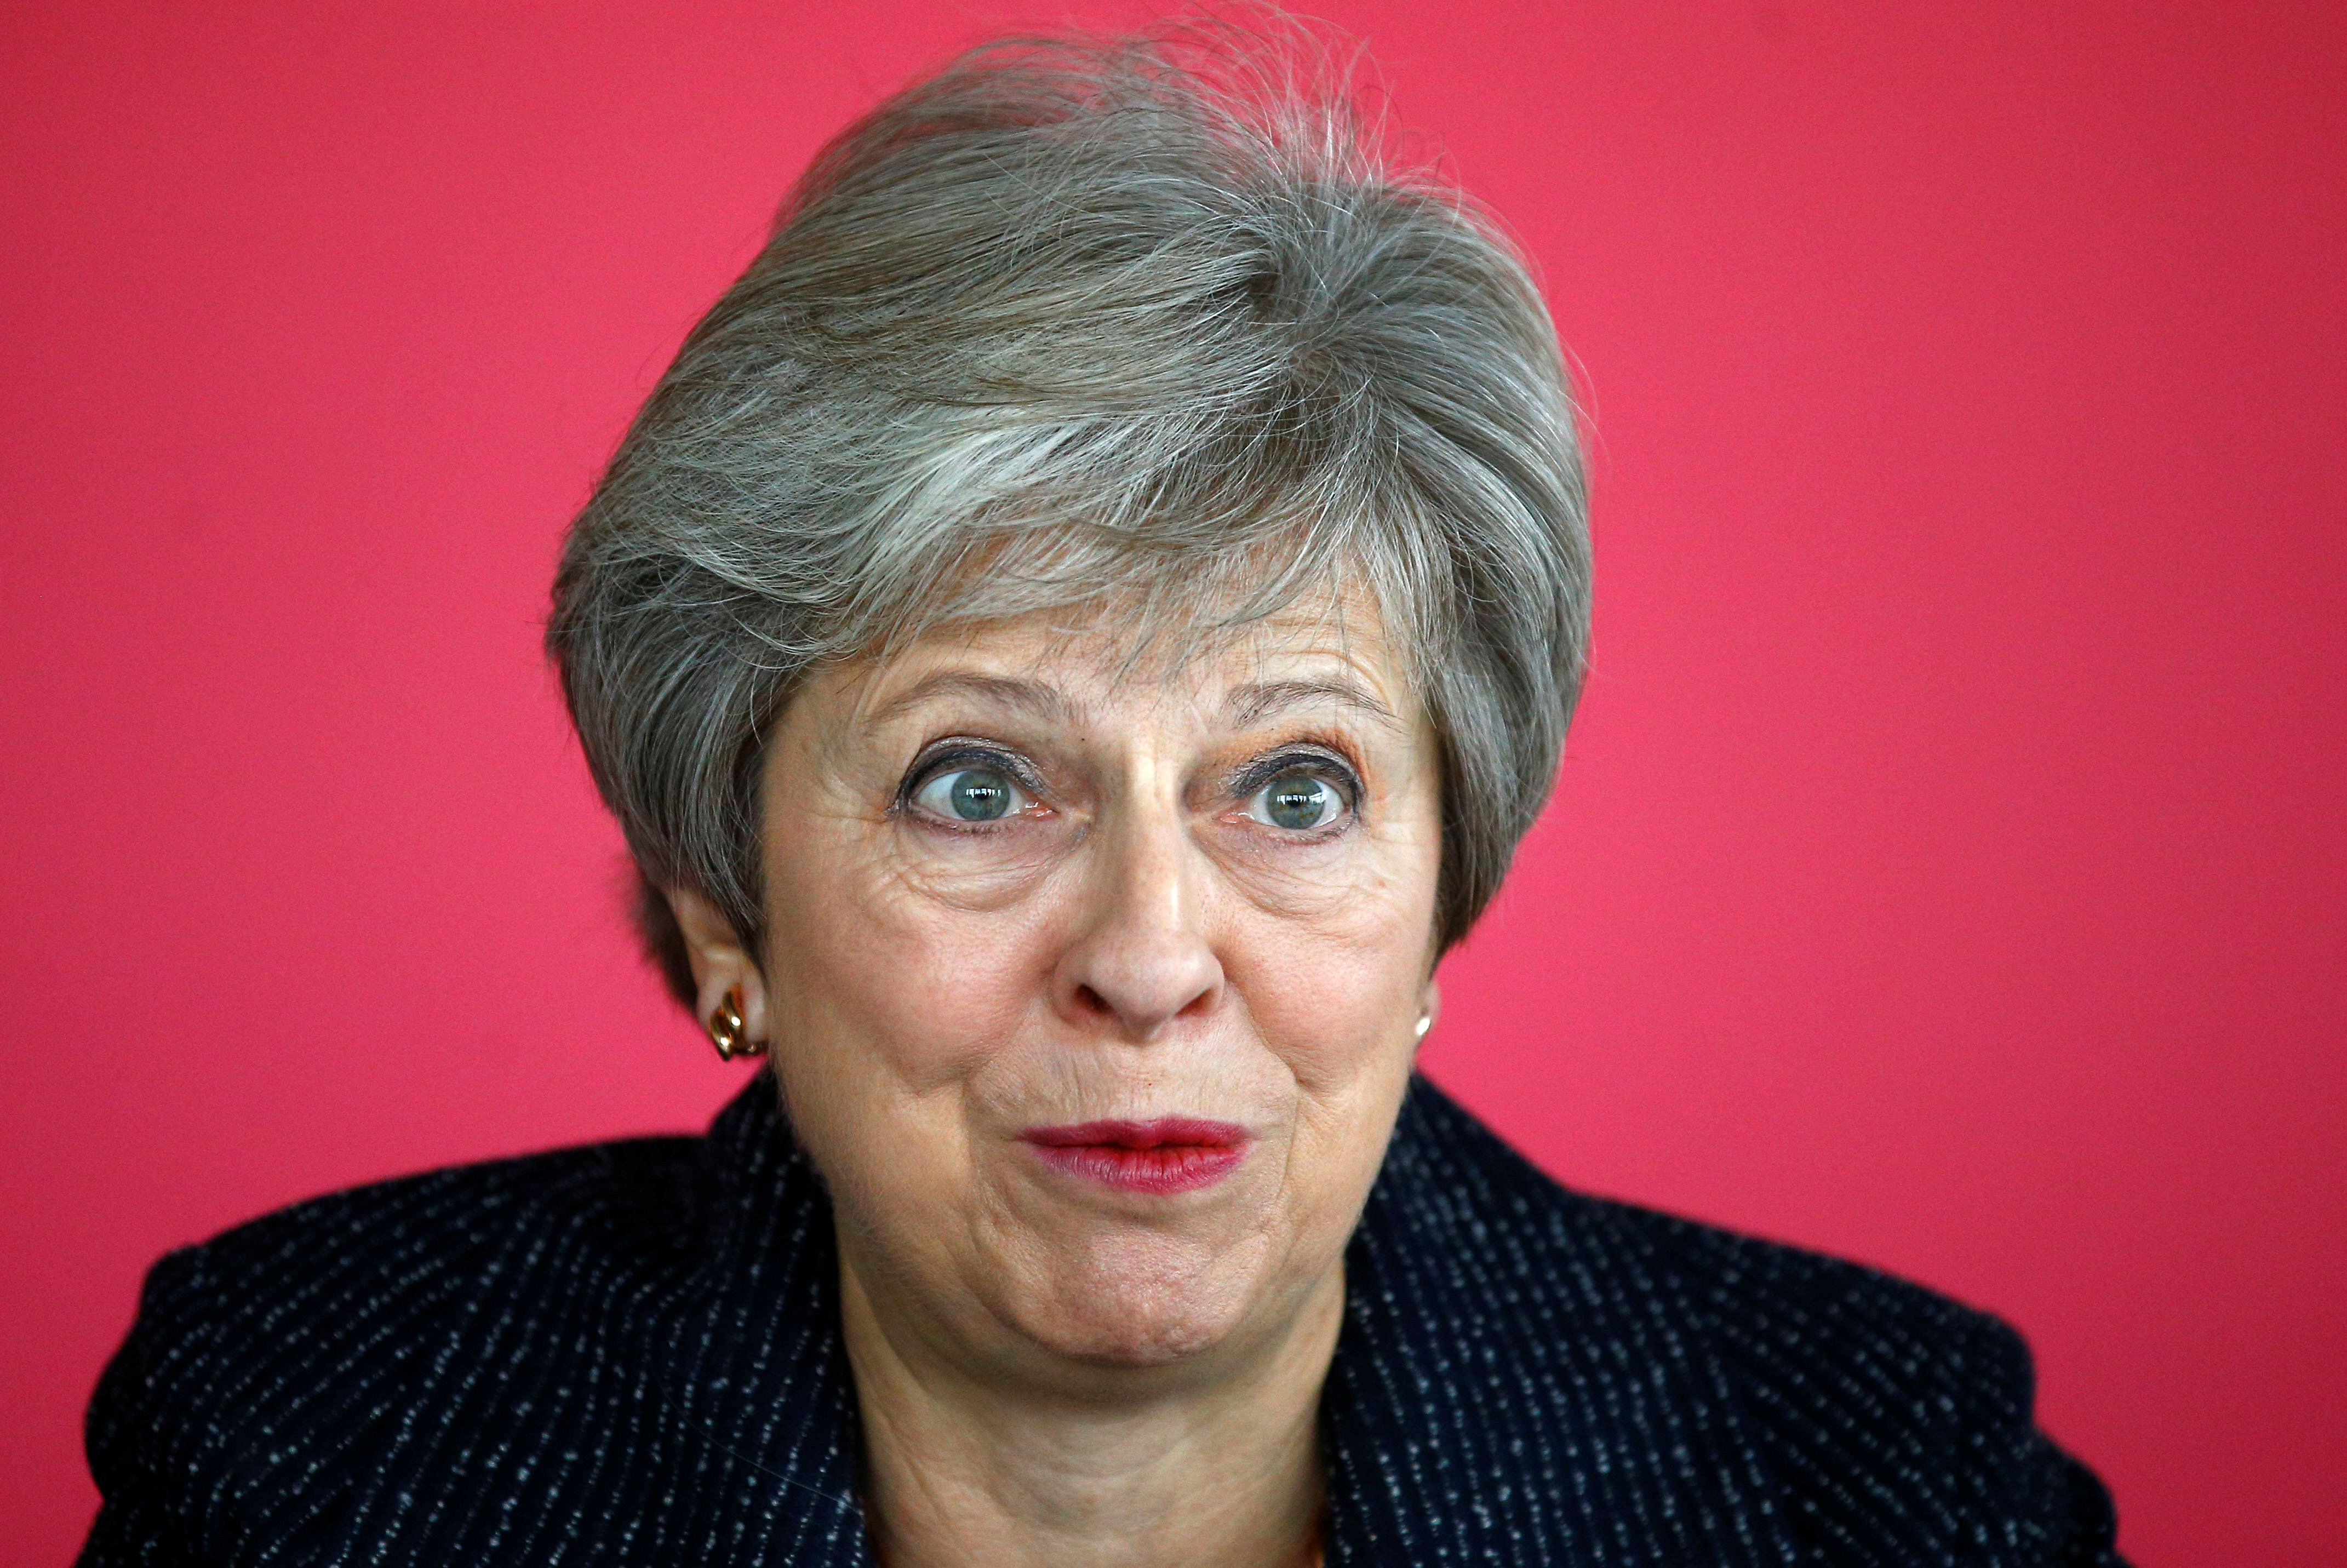 BREXIT UPDATE: MARCH IS COMING FOR MAY